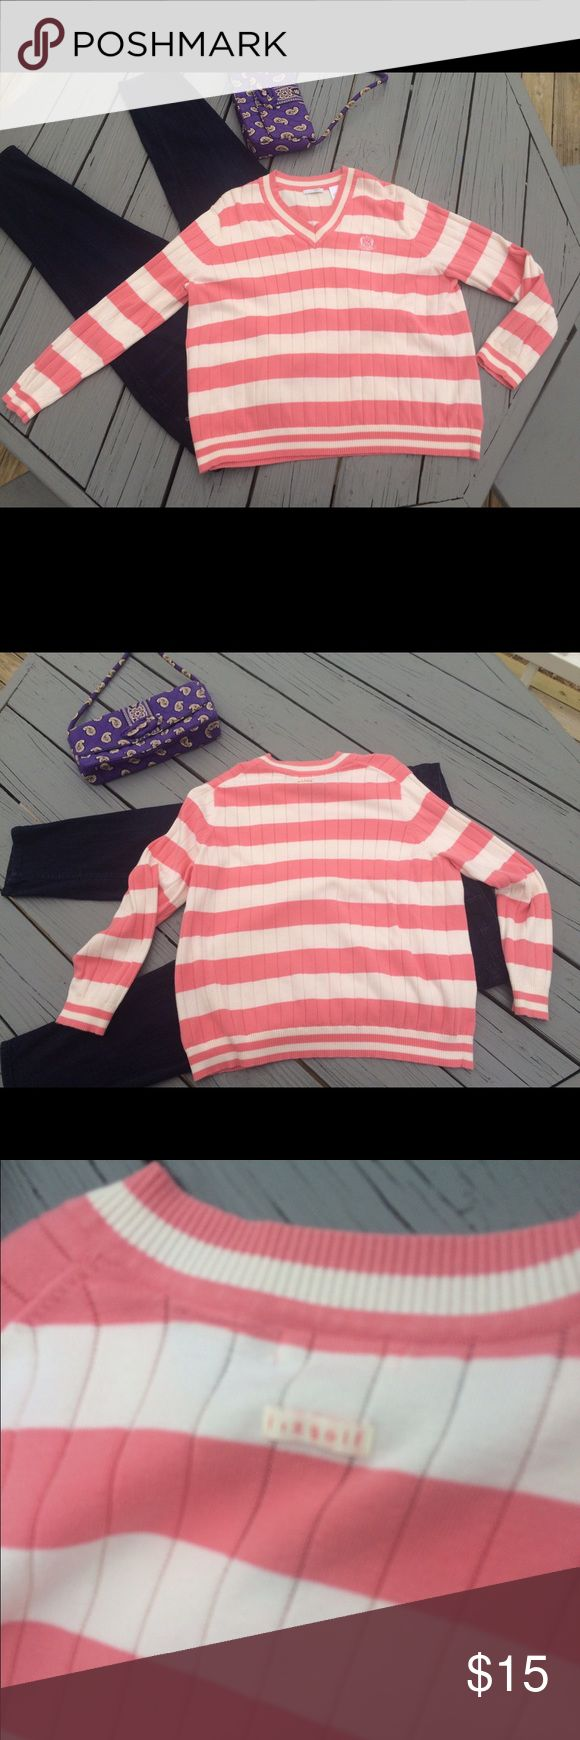 "Liz golf 2 XL stripe V Neck sweater salmon  ivory Liz golf 2 XL stripe V Neck sweater salmon ivory.  24"" chest 24"" Length Excellent condition non smoking home. Liz Claiborne Sweaters V-Necks"